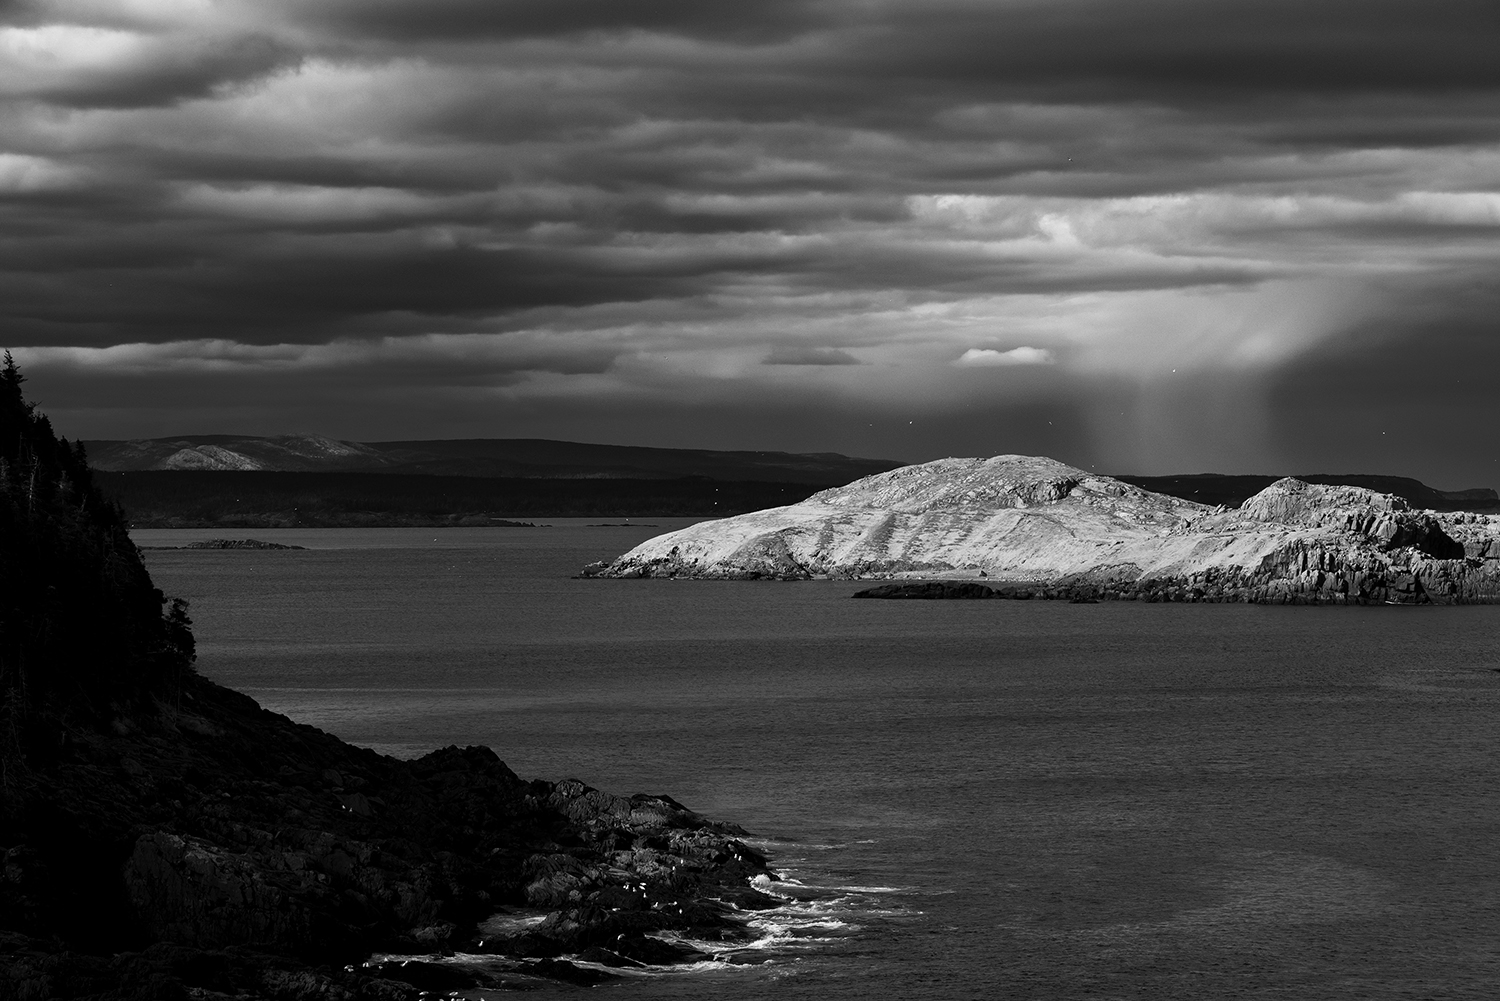 Newfoundland, CanadaImage No: 19-003973-bw  Click HERE to Add to Cart